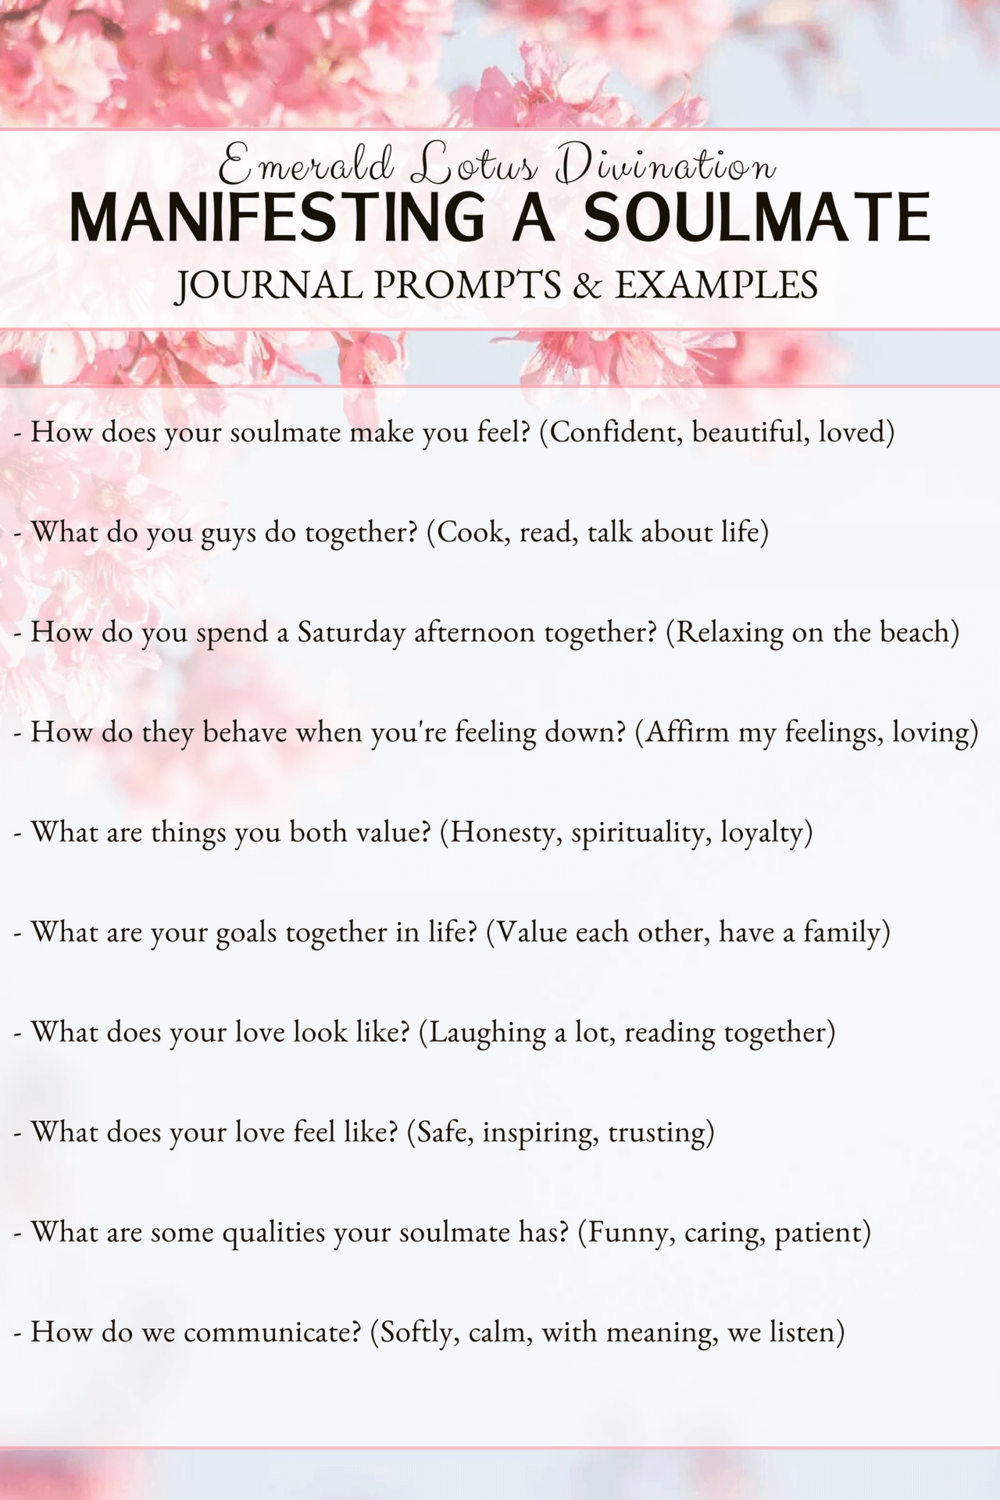 Manifesting-a-soulmate-journal-prompts-Emerald-Lotus-Divination-1.png